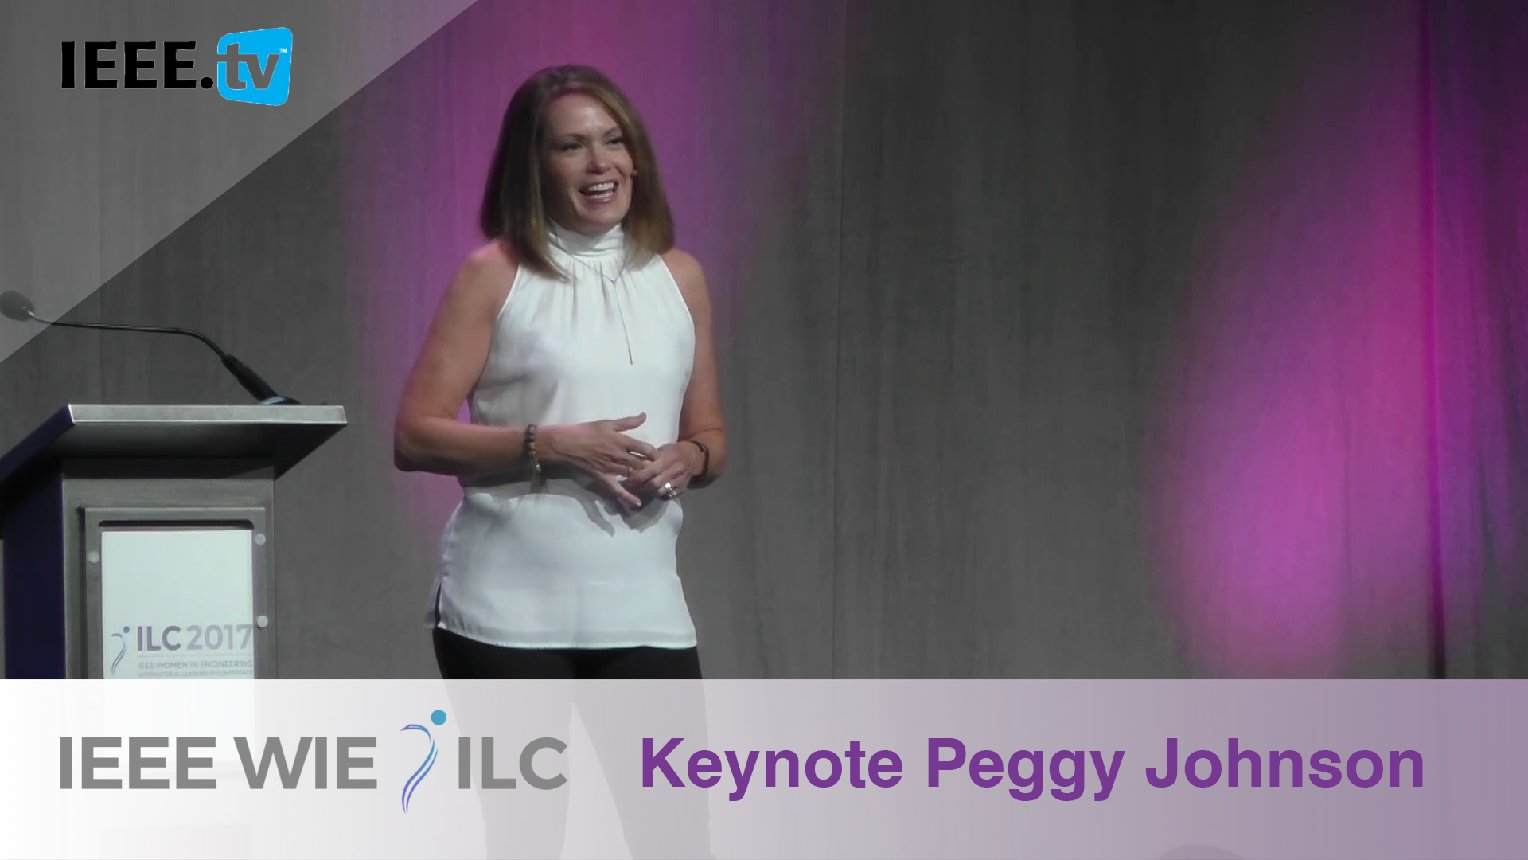 Keynote Peggy Johnson on Authenticity in the Workplace - IEEE WIE ILC 2017